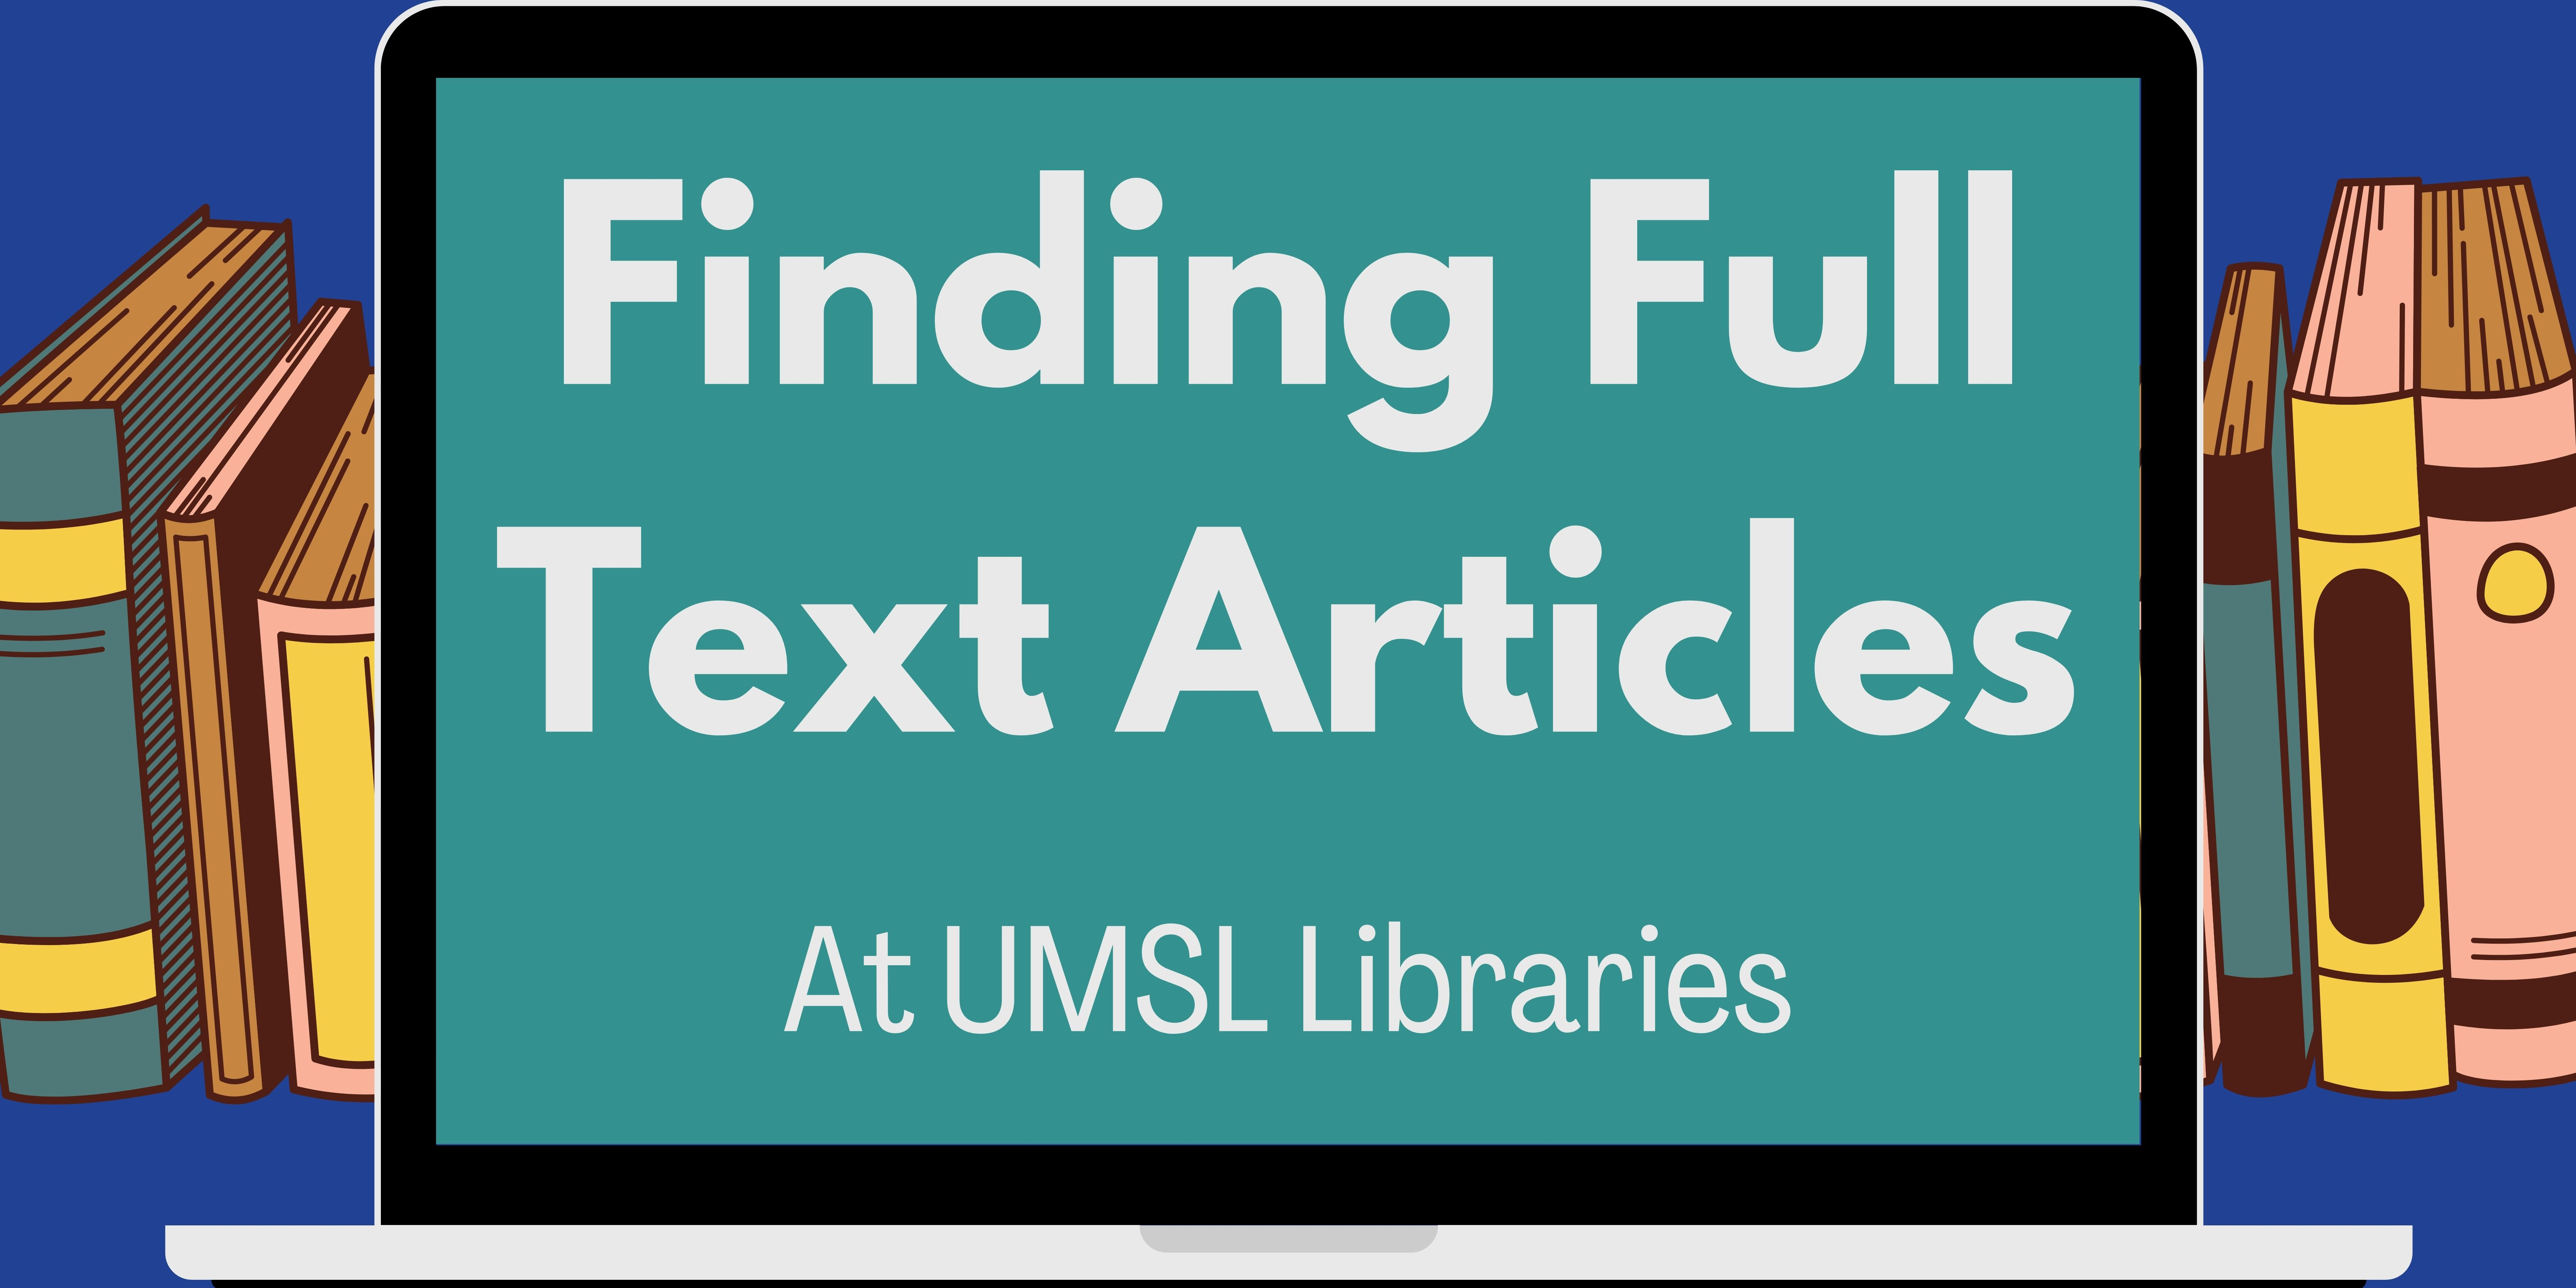 Finding Full Text Articles at UMSL Libraries